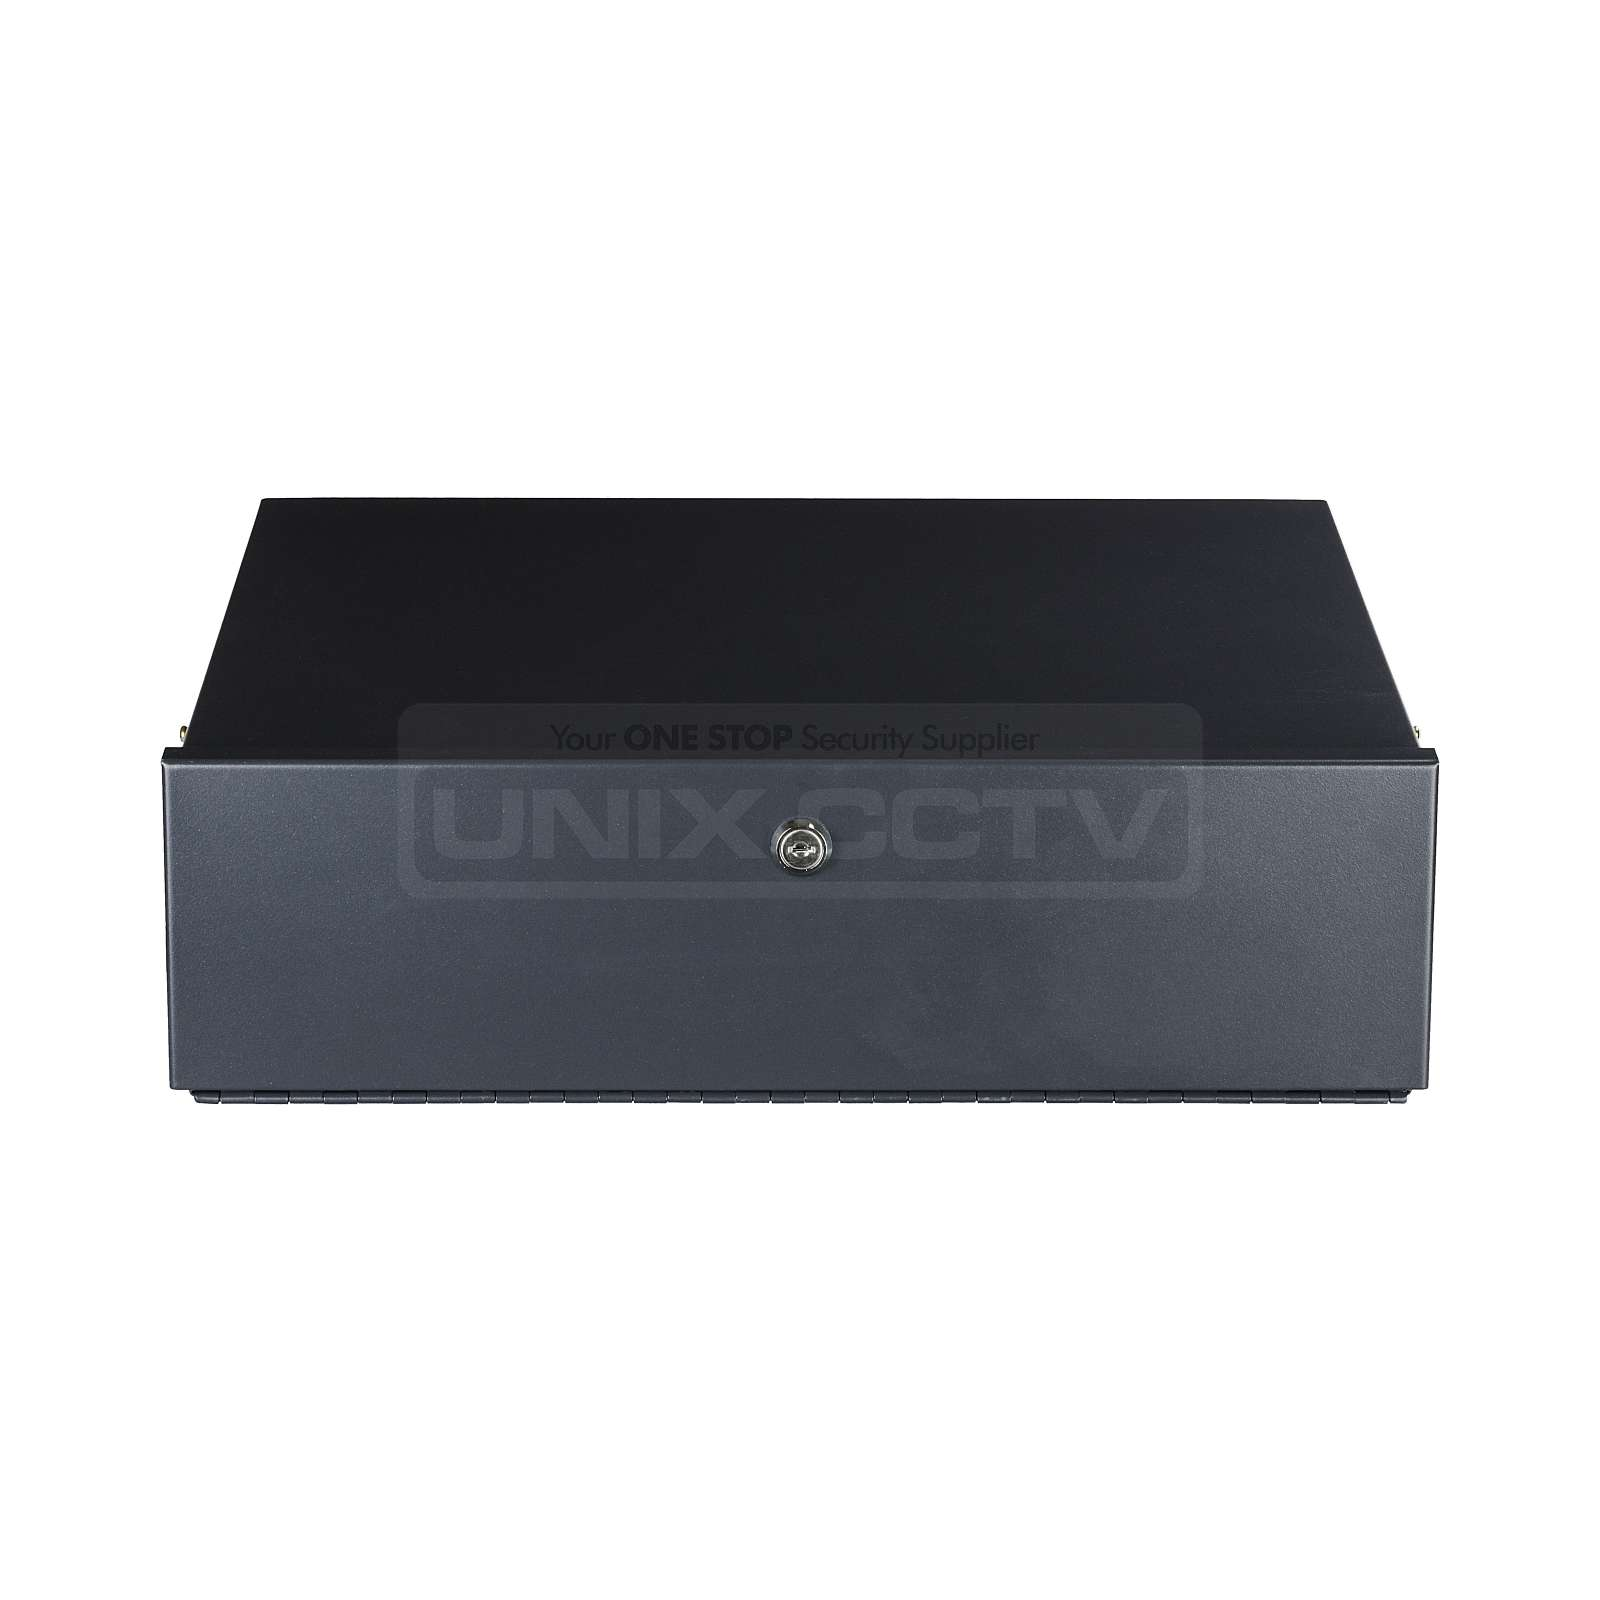 how to build security box for tv